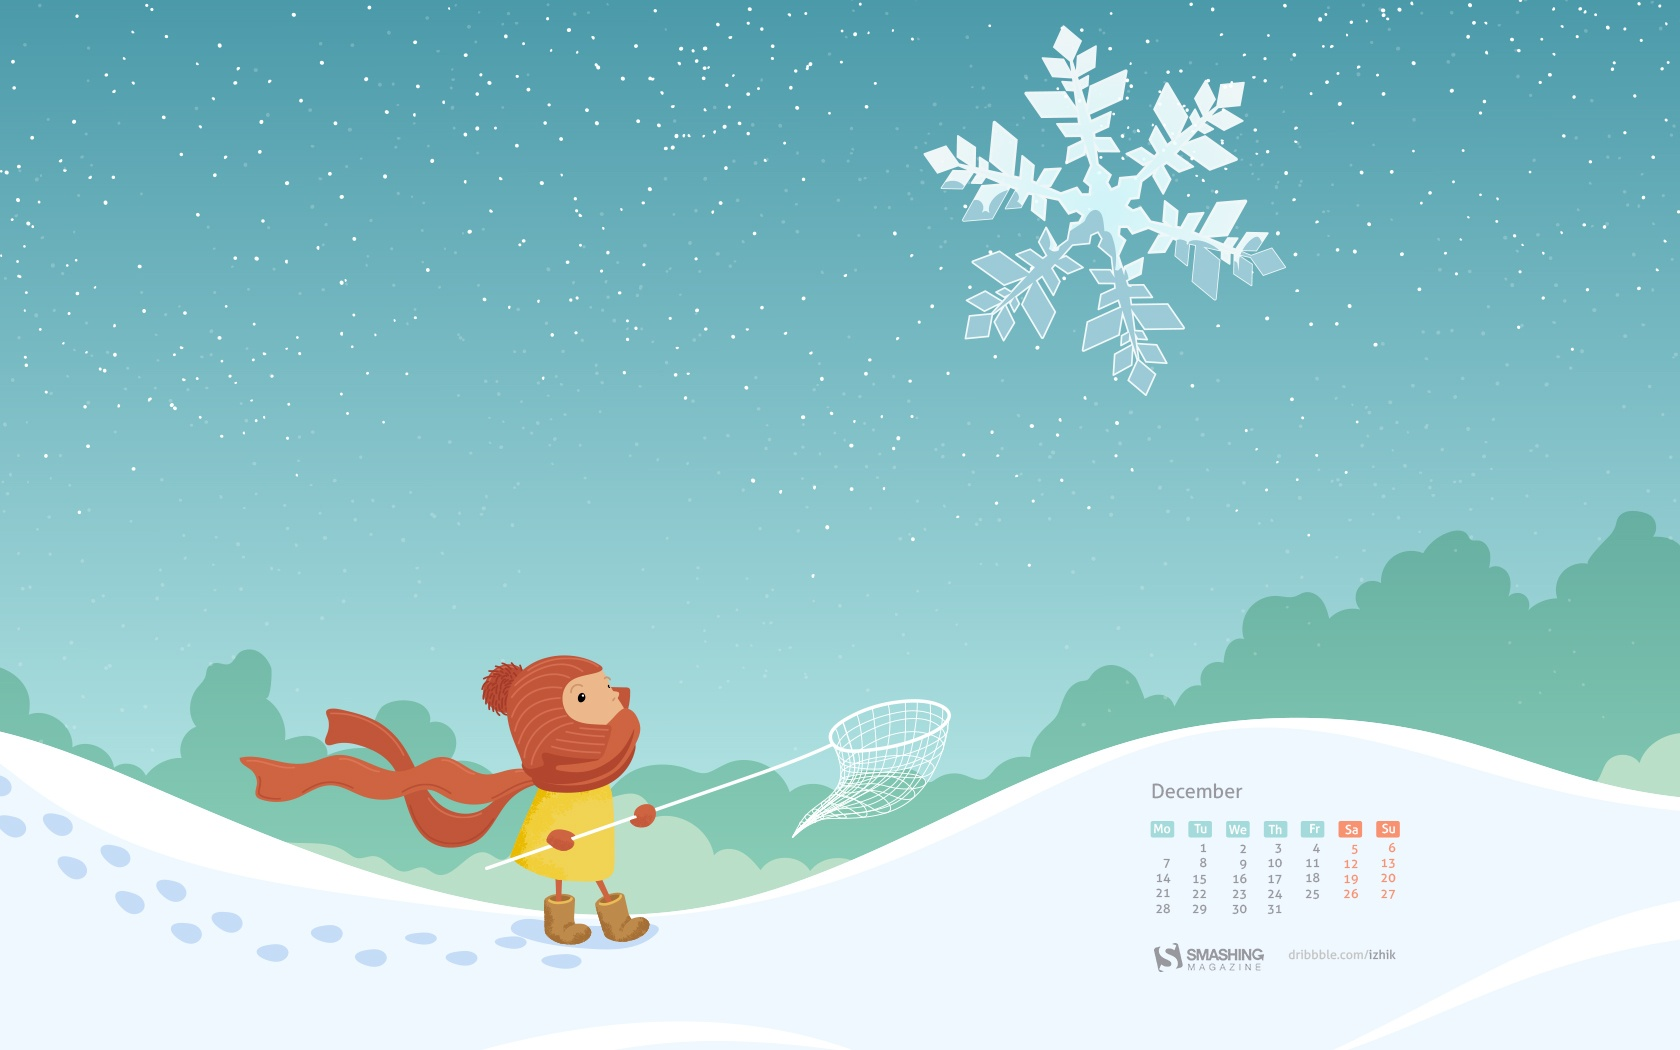 Month Calendar Christmas Desktop Wallpaper 52522 World